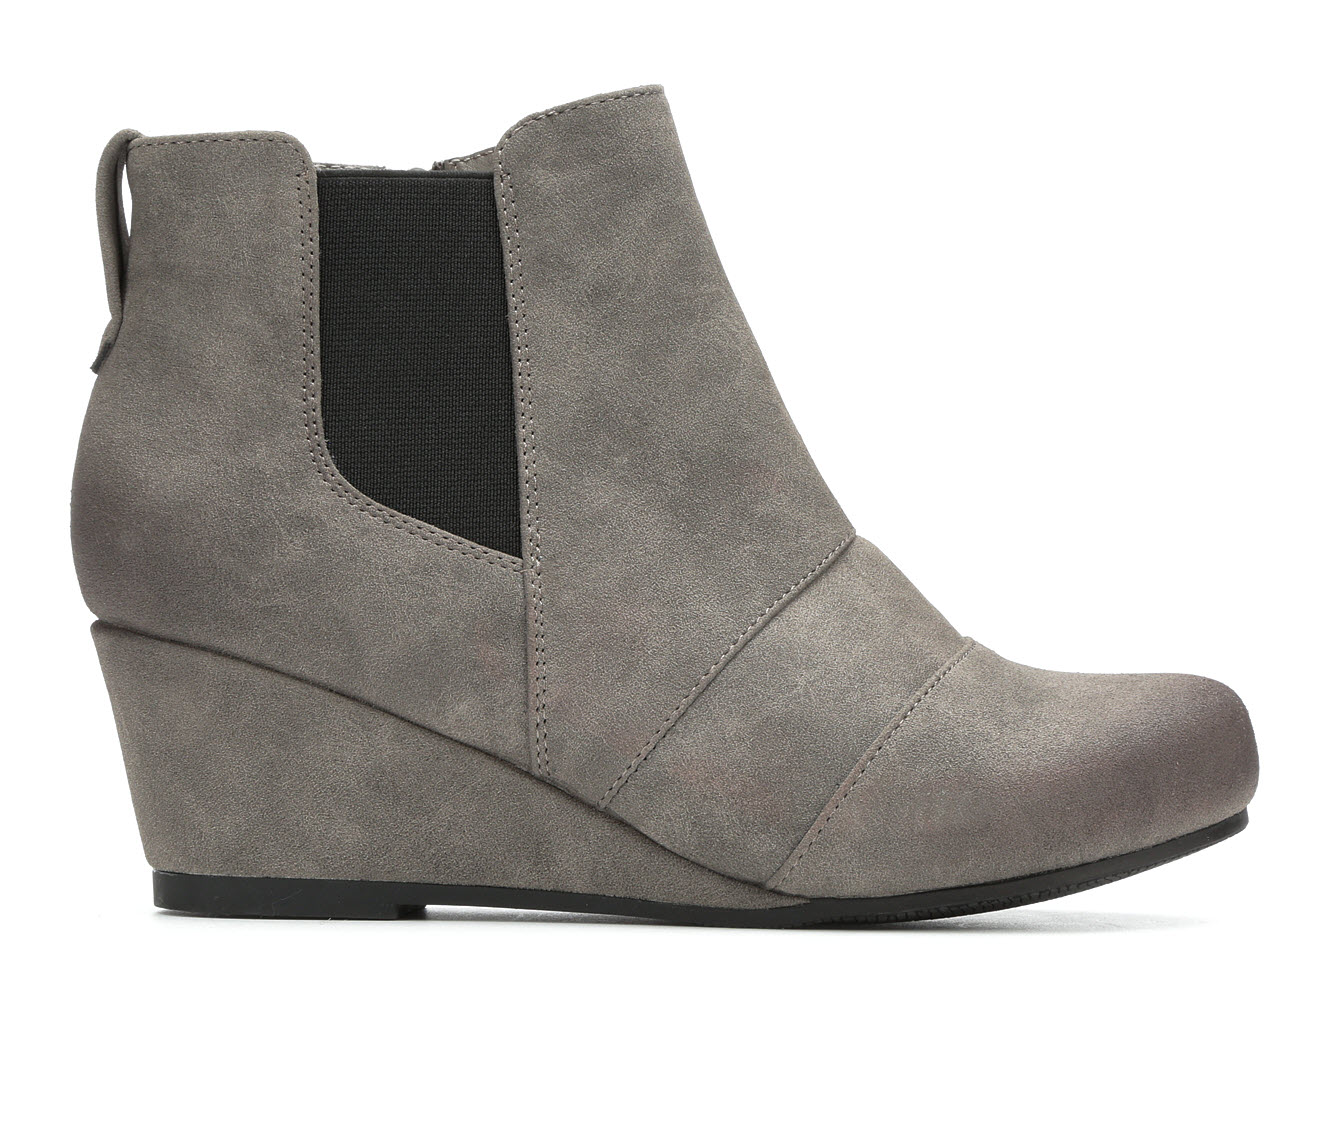 Axxiom Dreena Women's Boot (Gray Faux Leather)